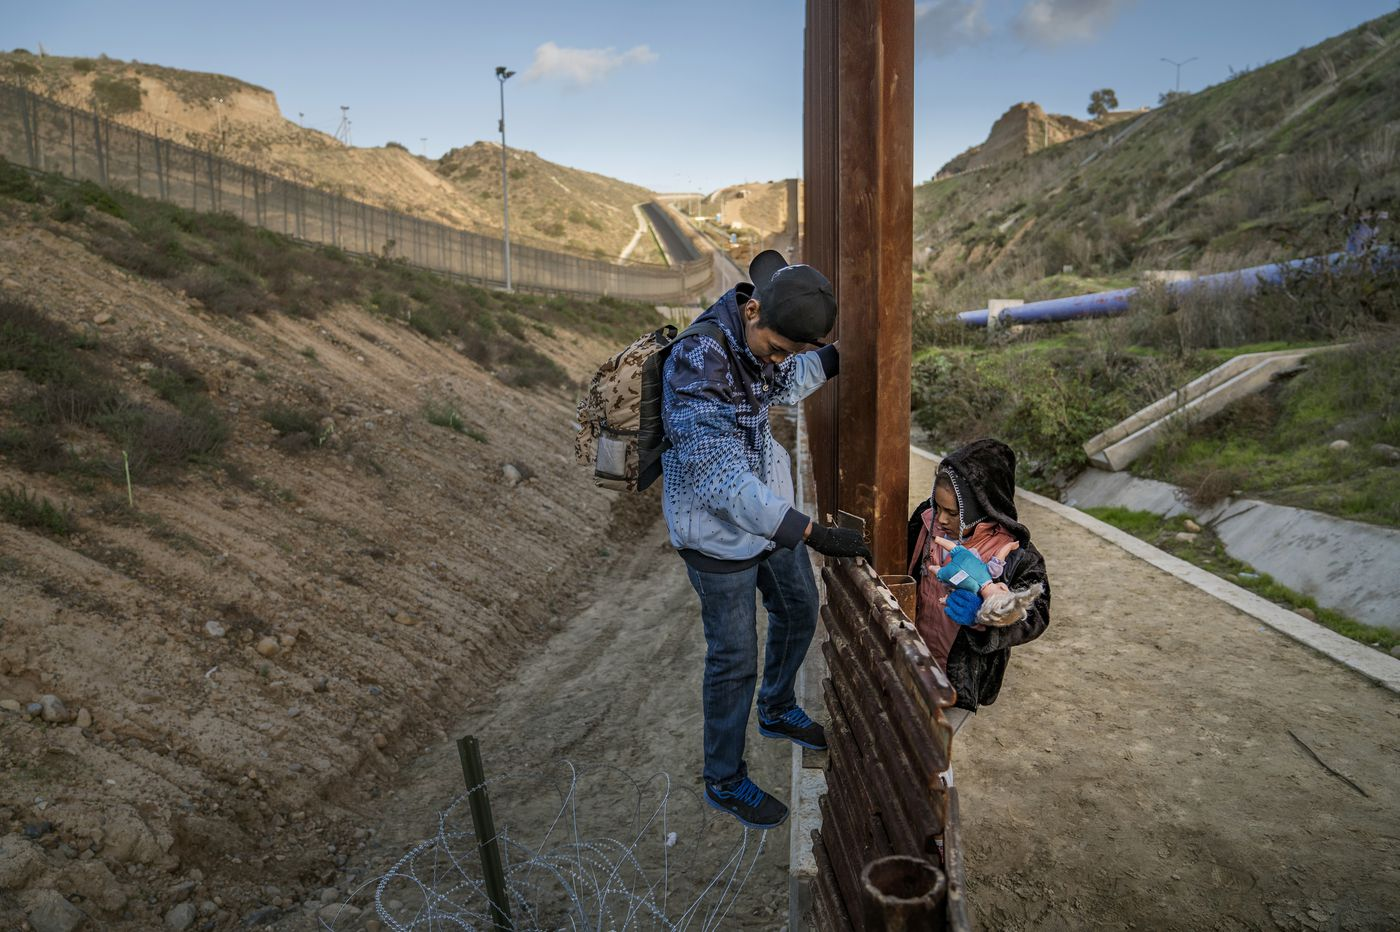 Border Patrol should not be held responsible for deaths following harrowing journey | Opinion